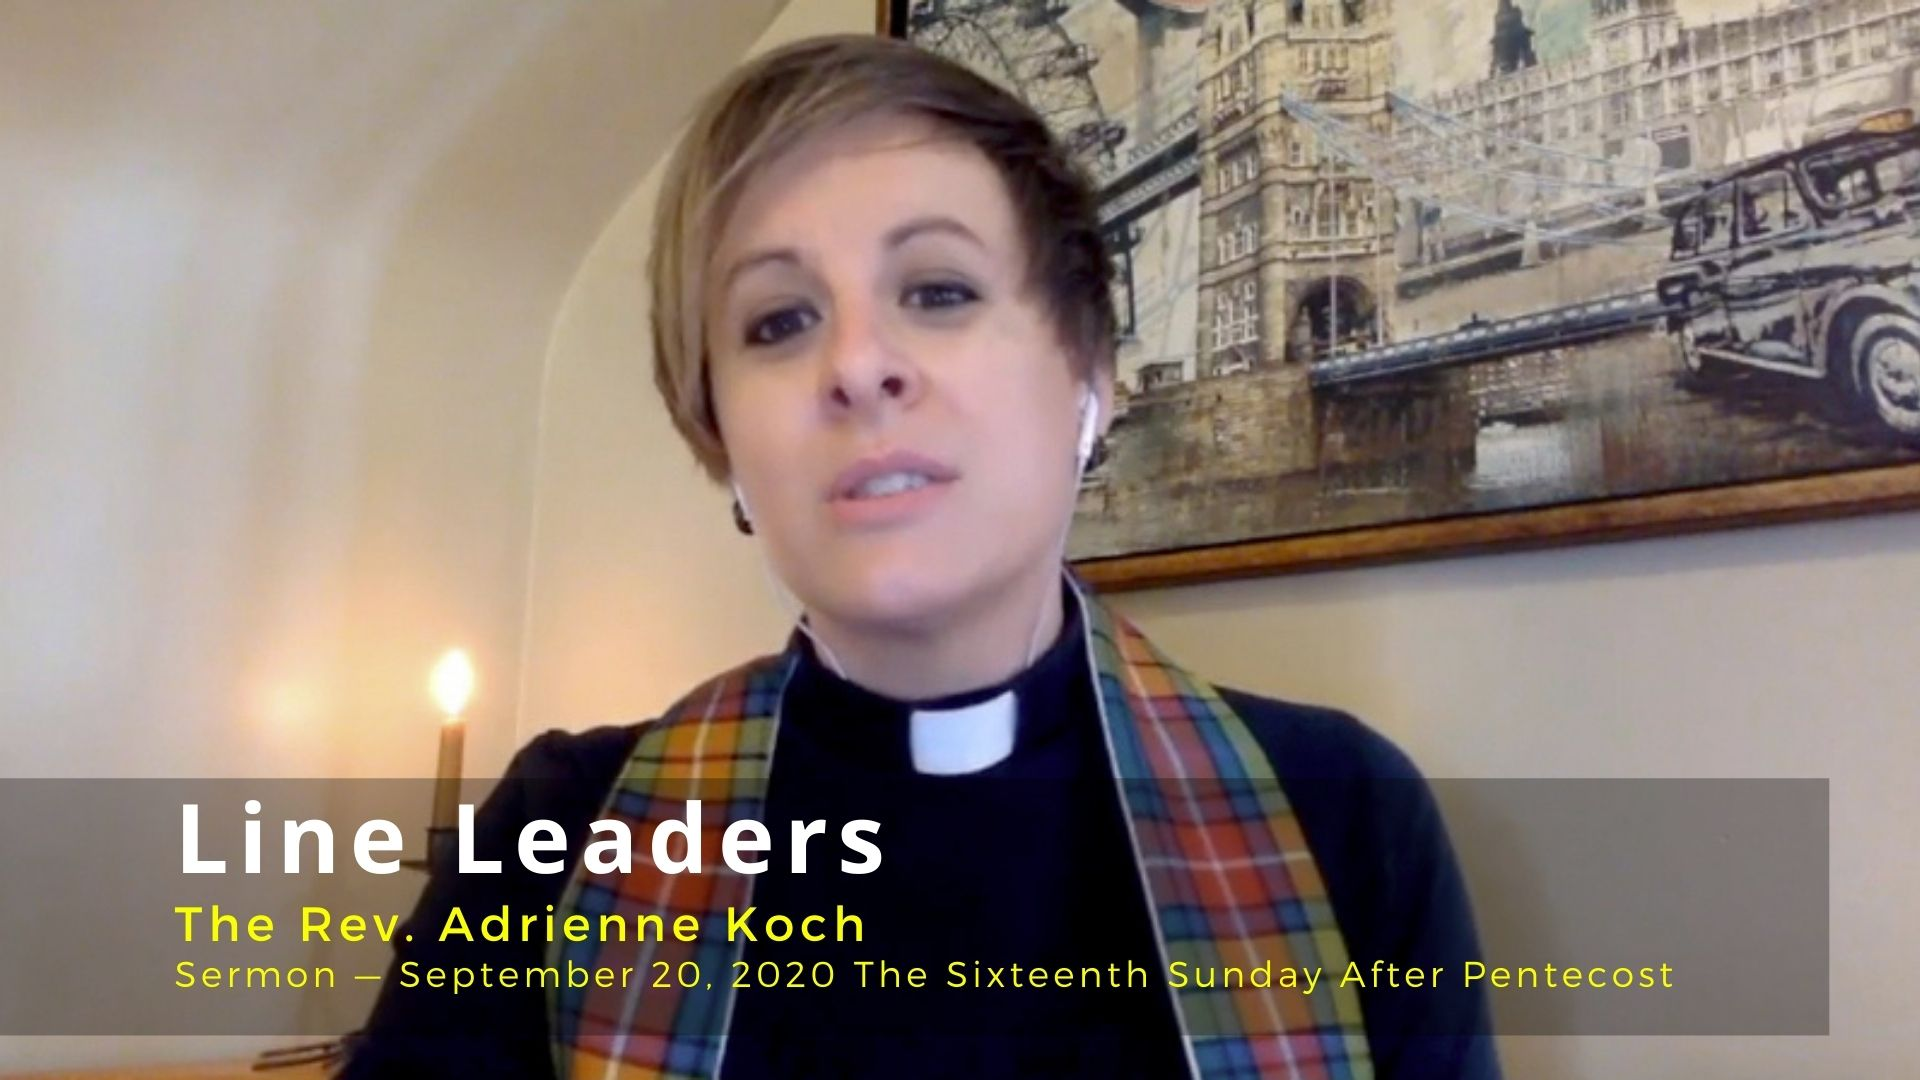 Video Sermon: Line Leaders